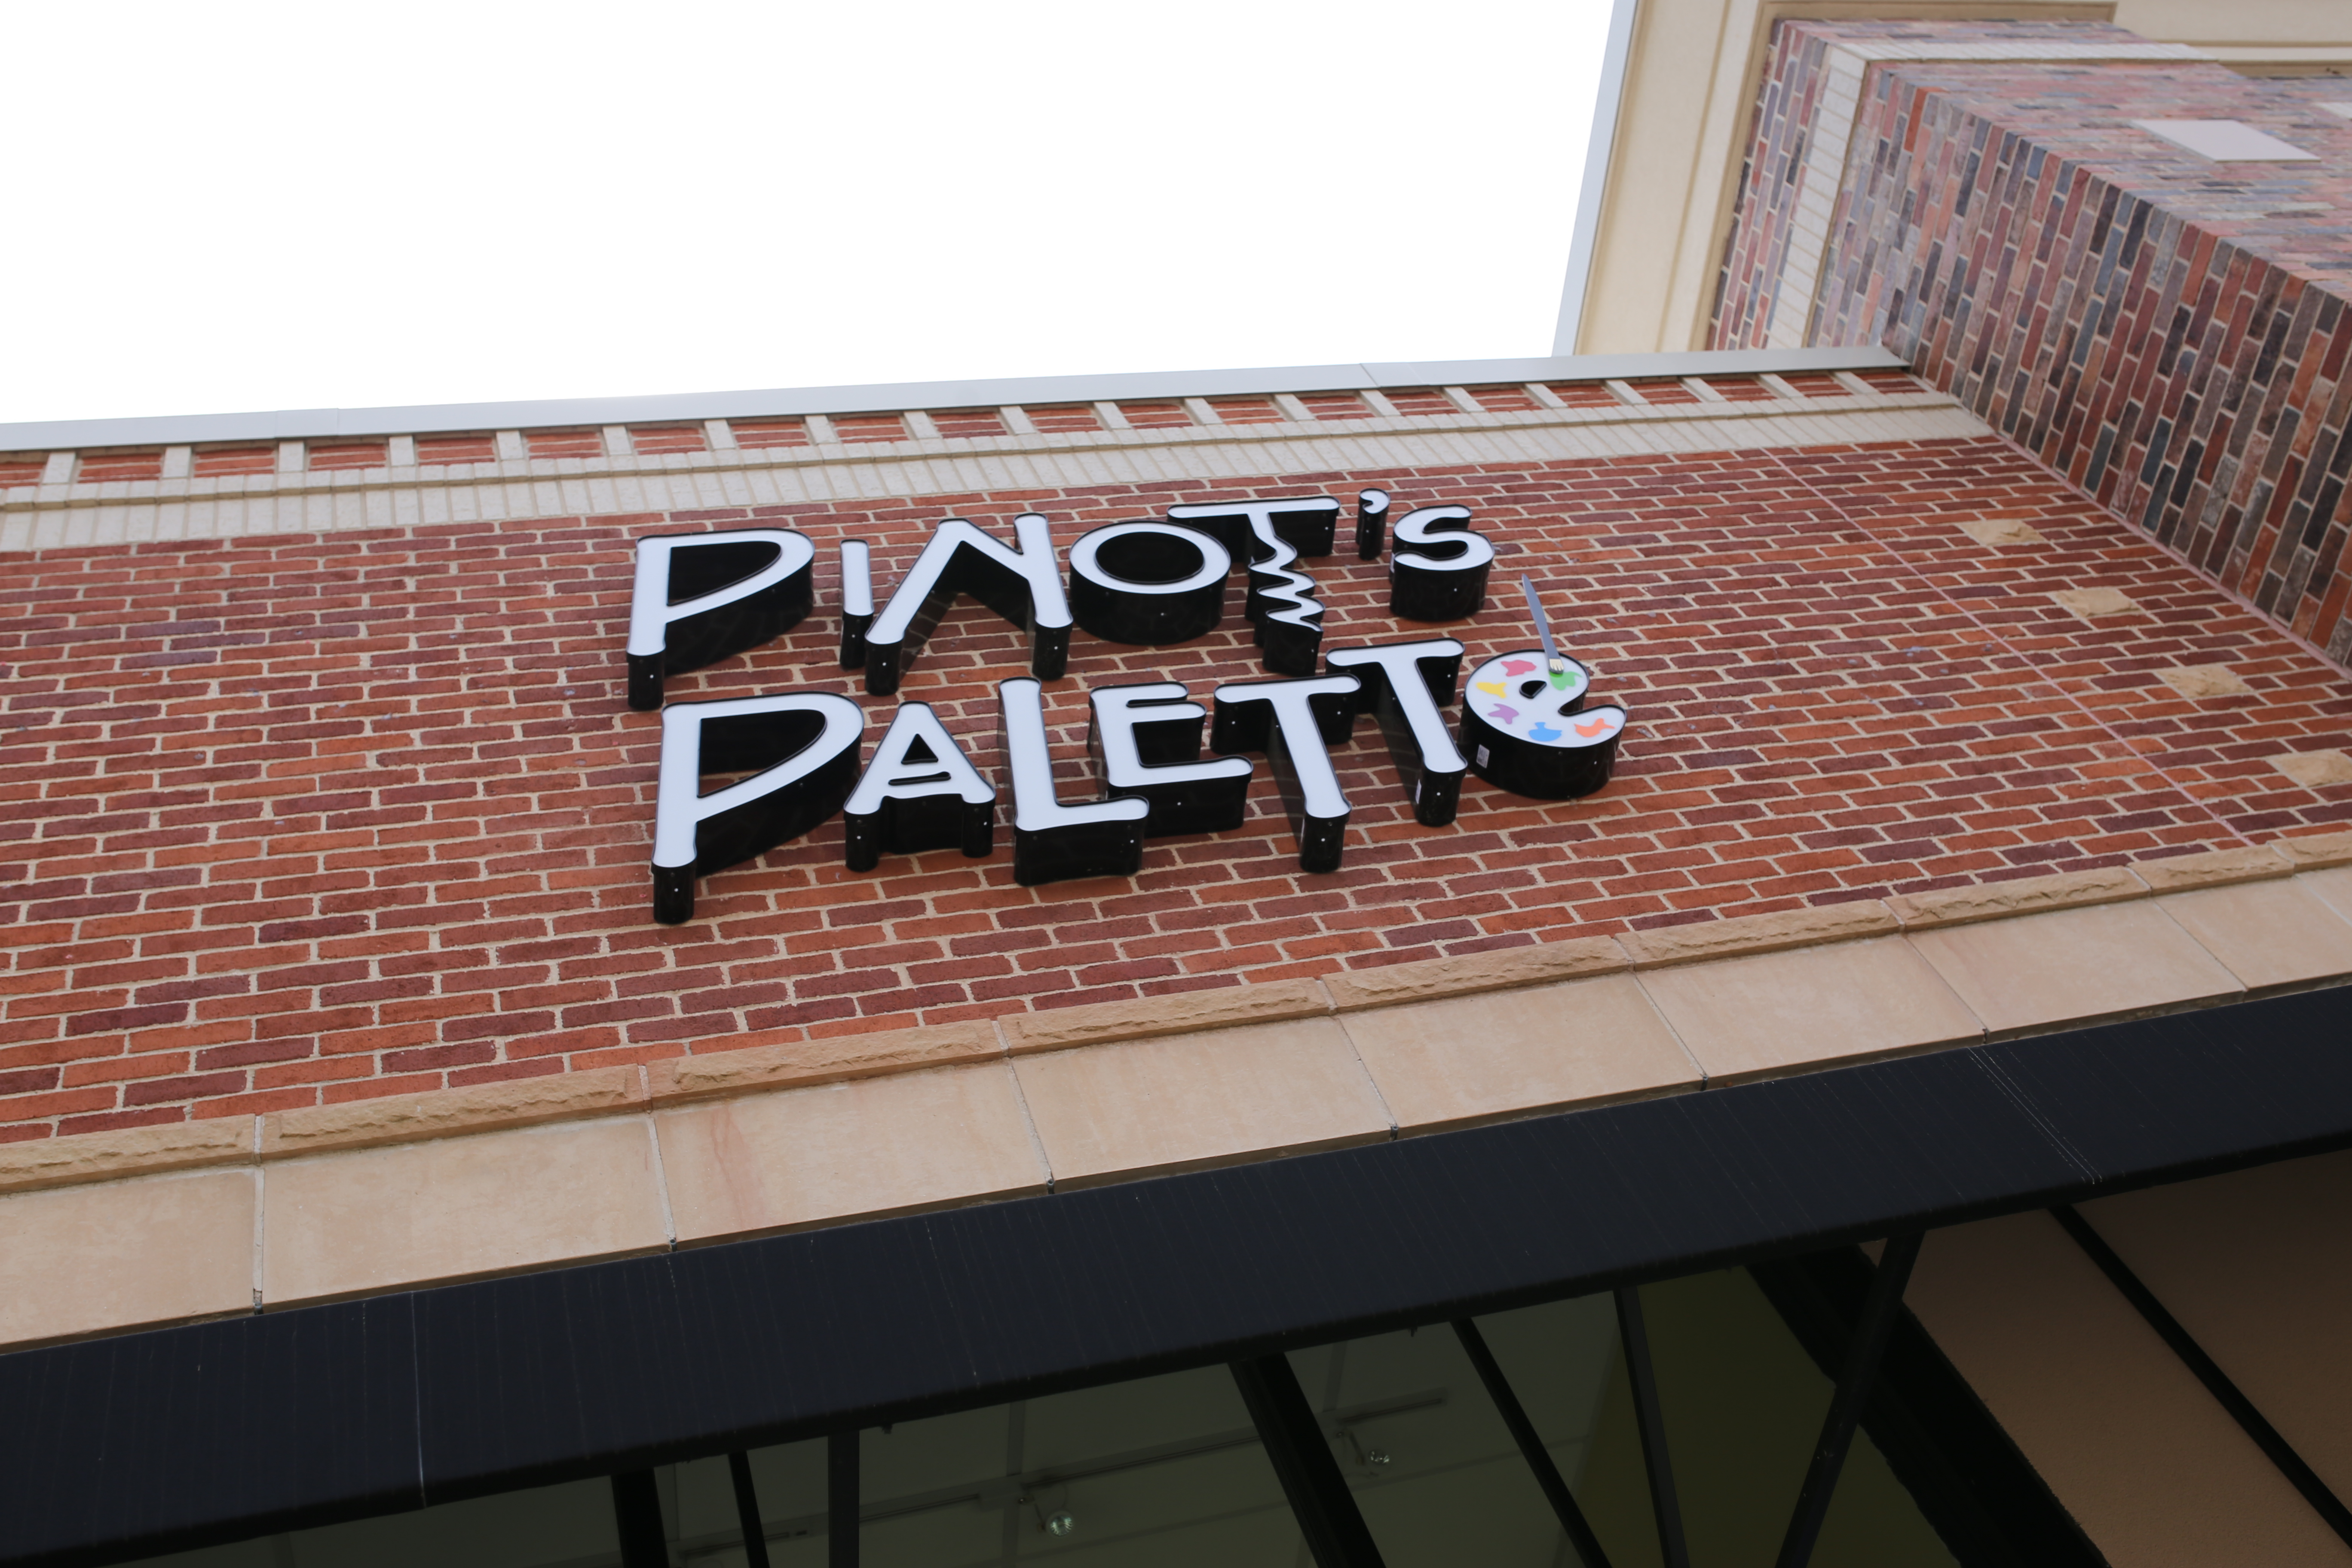 Pinot's Palette image 2